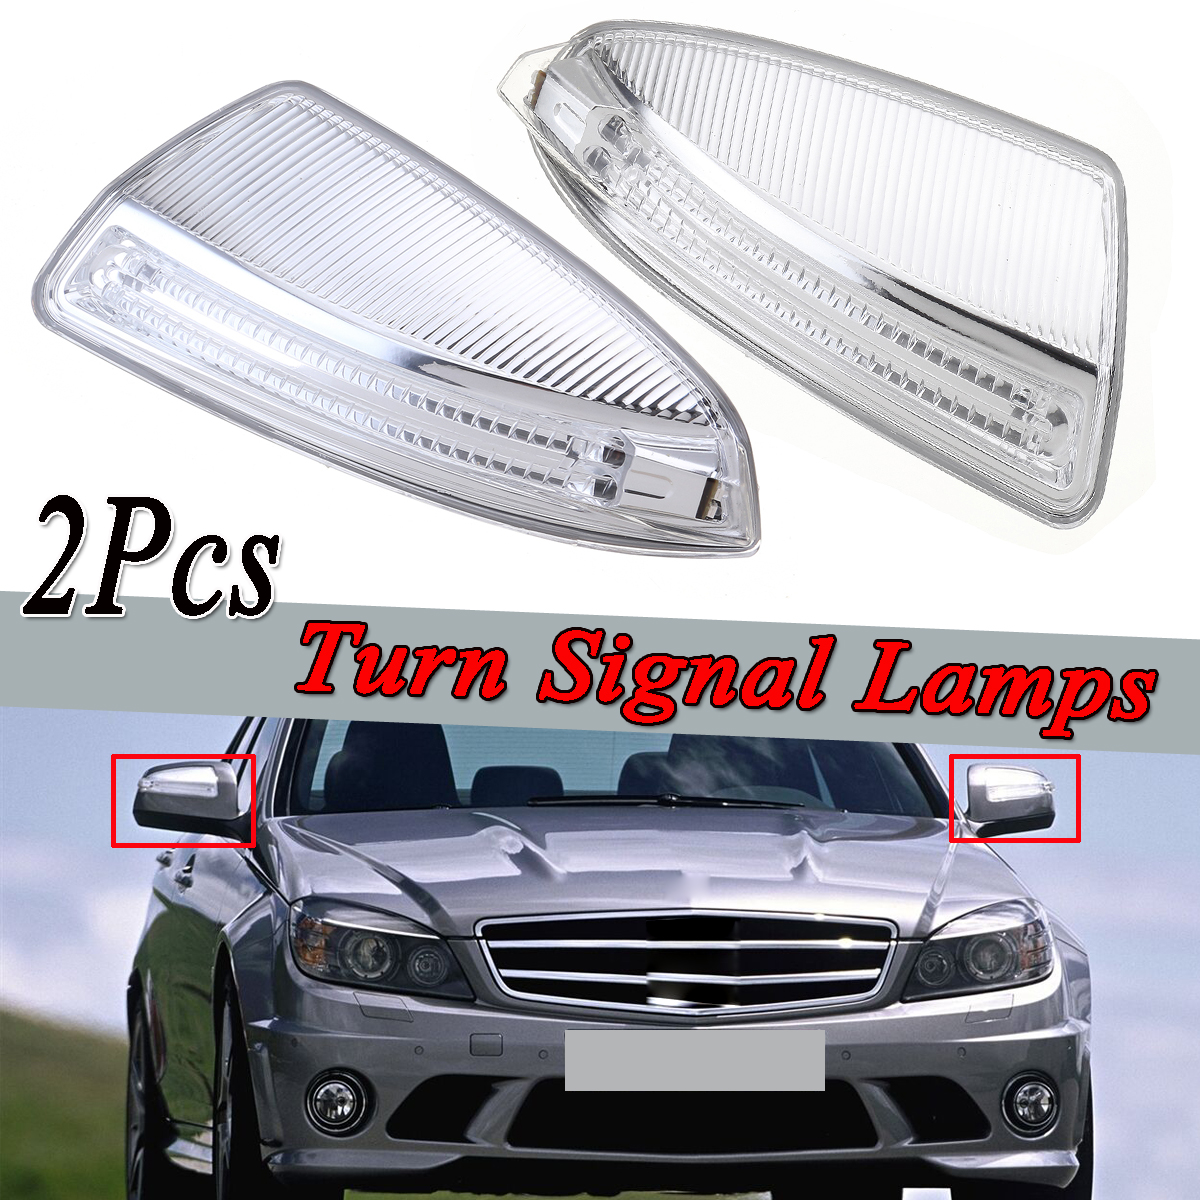 Left/Right Car Door Rearview Mirror Turn Signal Lamps Lights Auto For Mercedes-Benz C-Class W204 ML Class W164 ML300 ML500 ML550Left/Right Car Door Rearview Mirror Turn Signal Lamps Lights Auto For Mercedes-Benz C-Class W204 ML Class W164 ML300 ML500 ML550